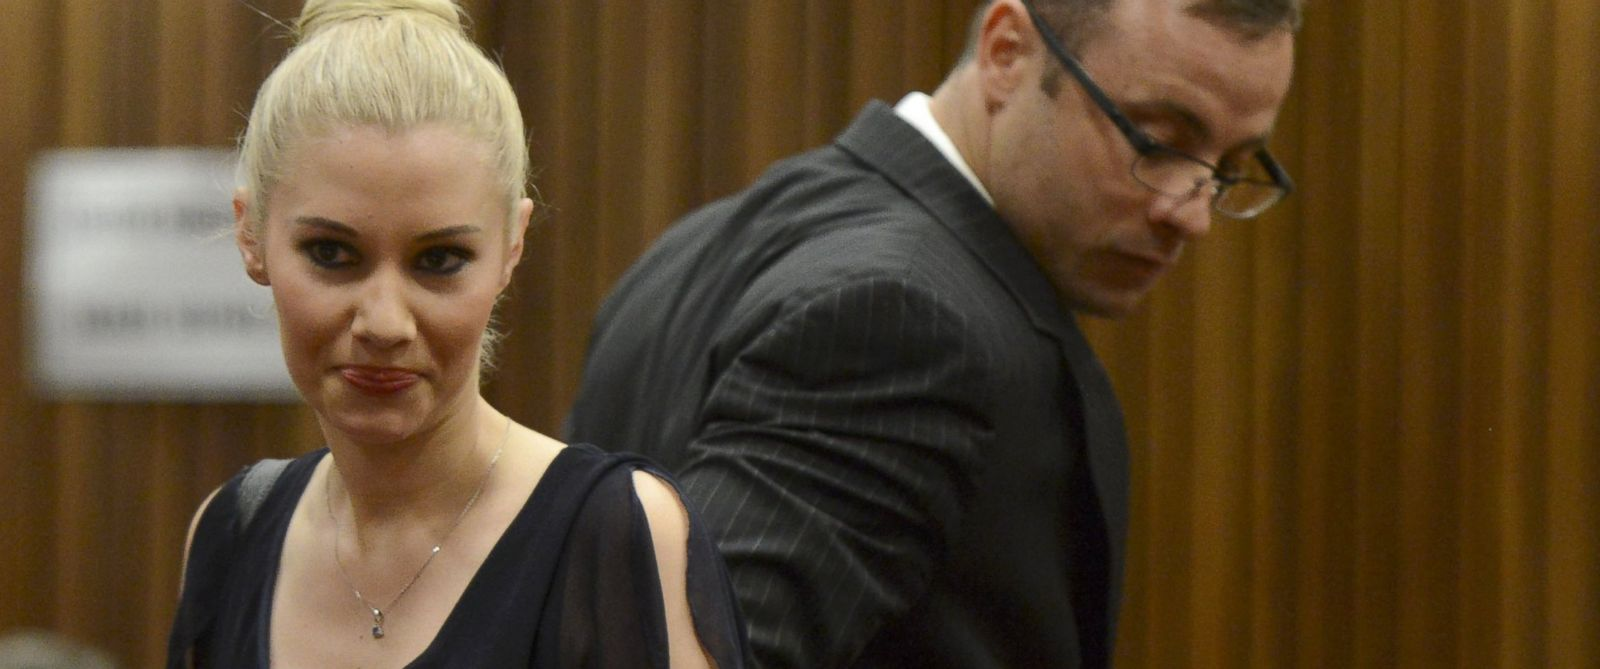 PHOTO: Oscar Pistorius makes his way past his ex girlfriend Samantha Taylor as he arrives in the Pretoria High Court for sentencing in his murder trial, Oct. 14, 2014, in Pretoria, South Africa.